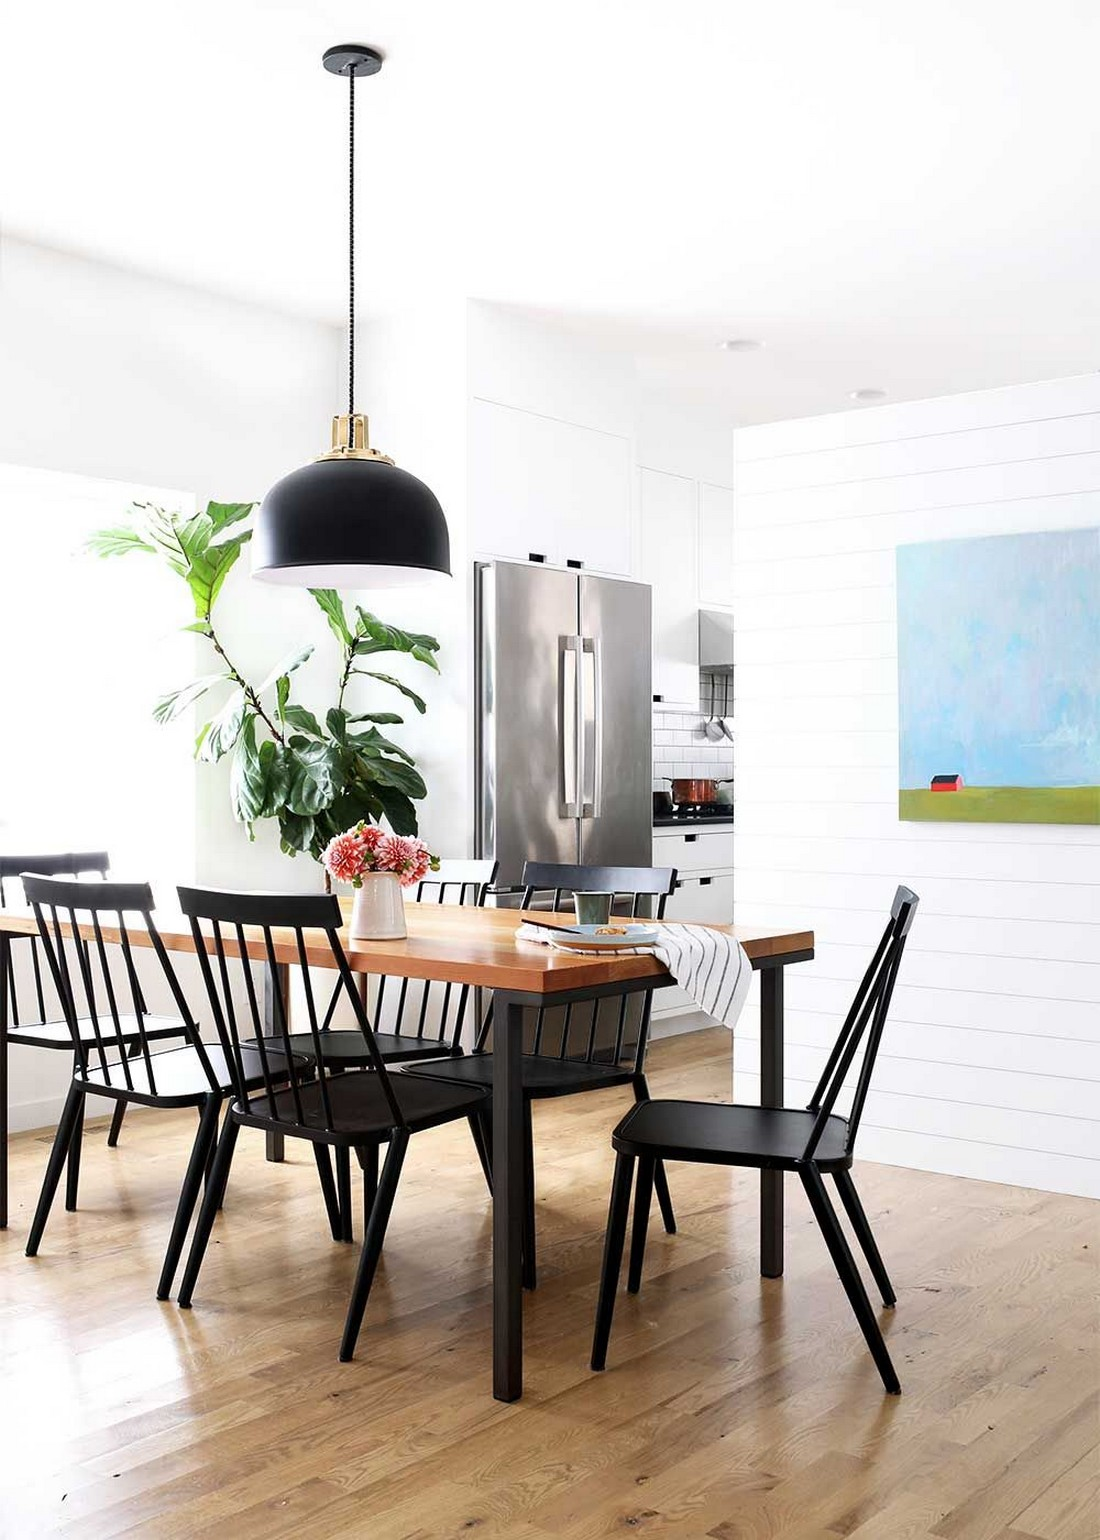 86 Different Types Of Dining Chairs Home Decor 77